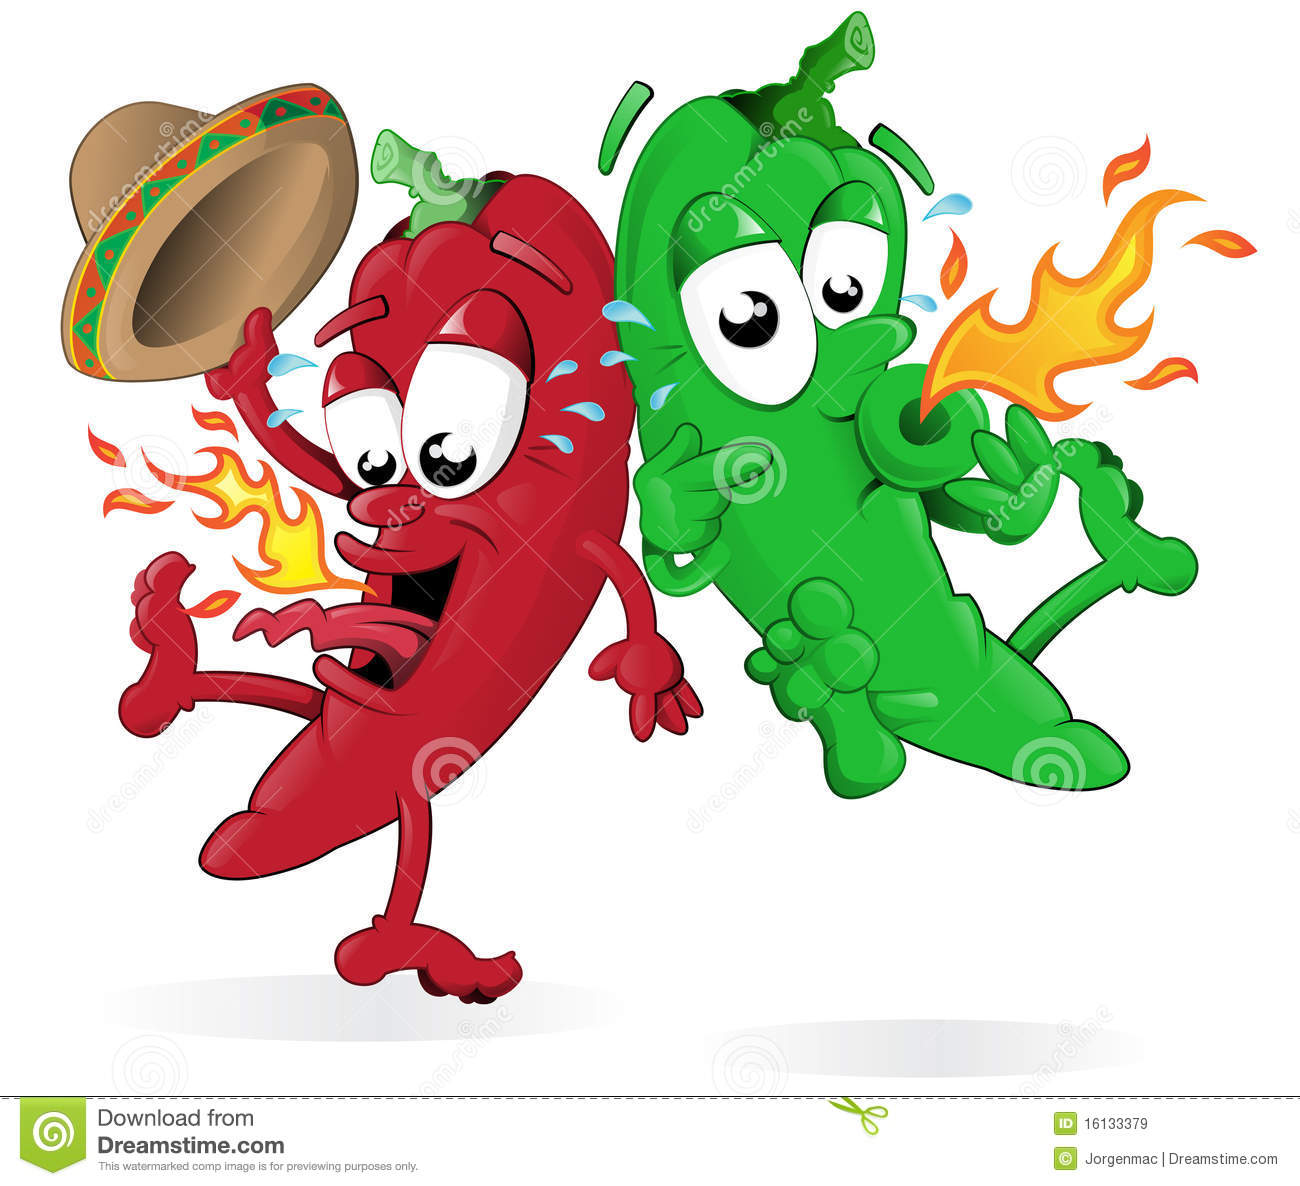 Hot peppers clipart.